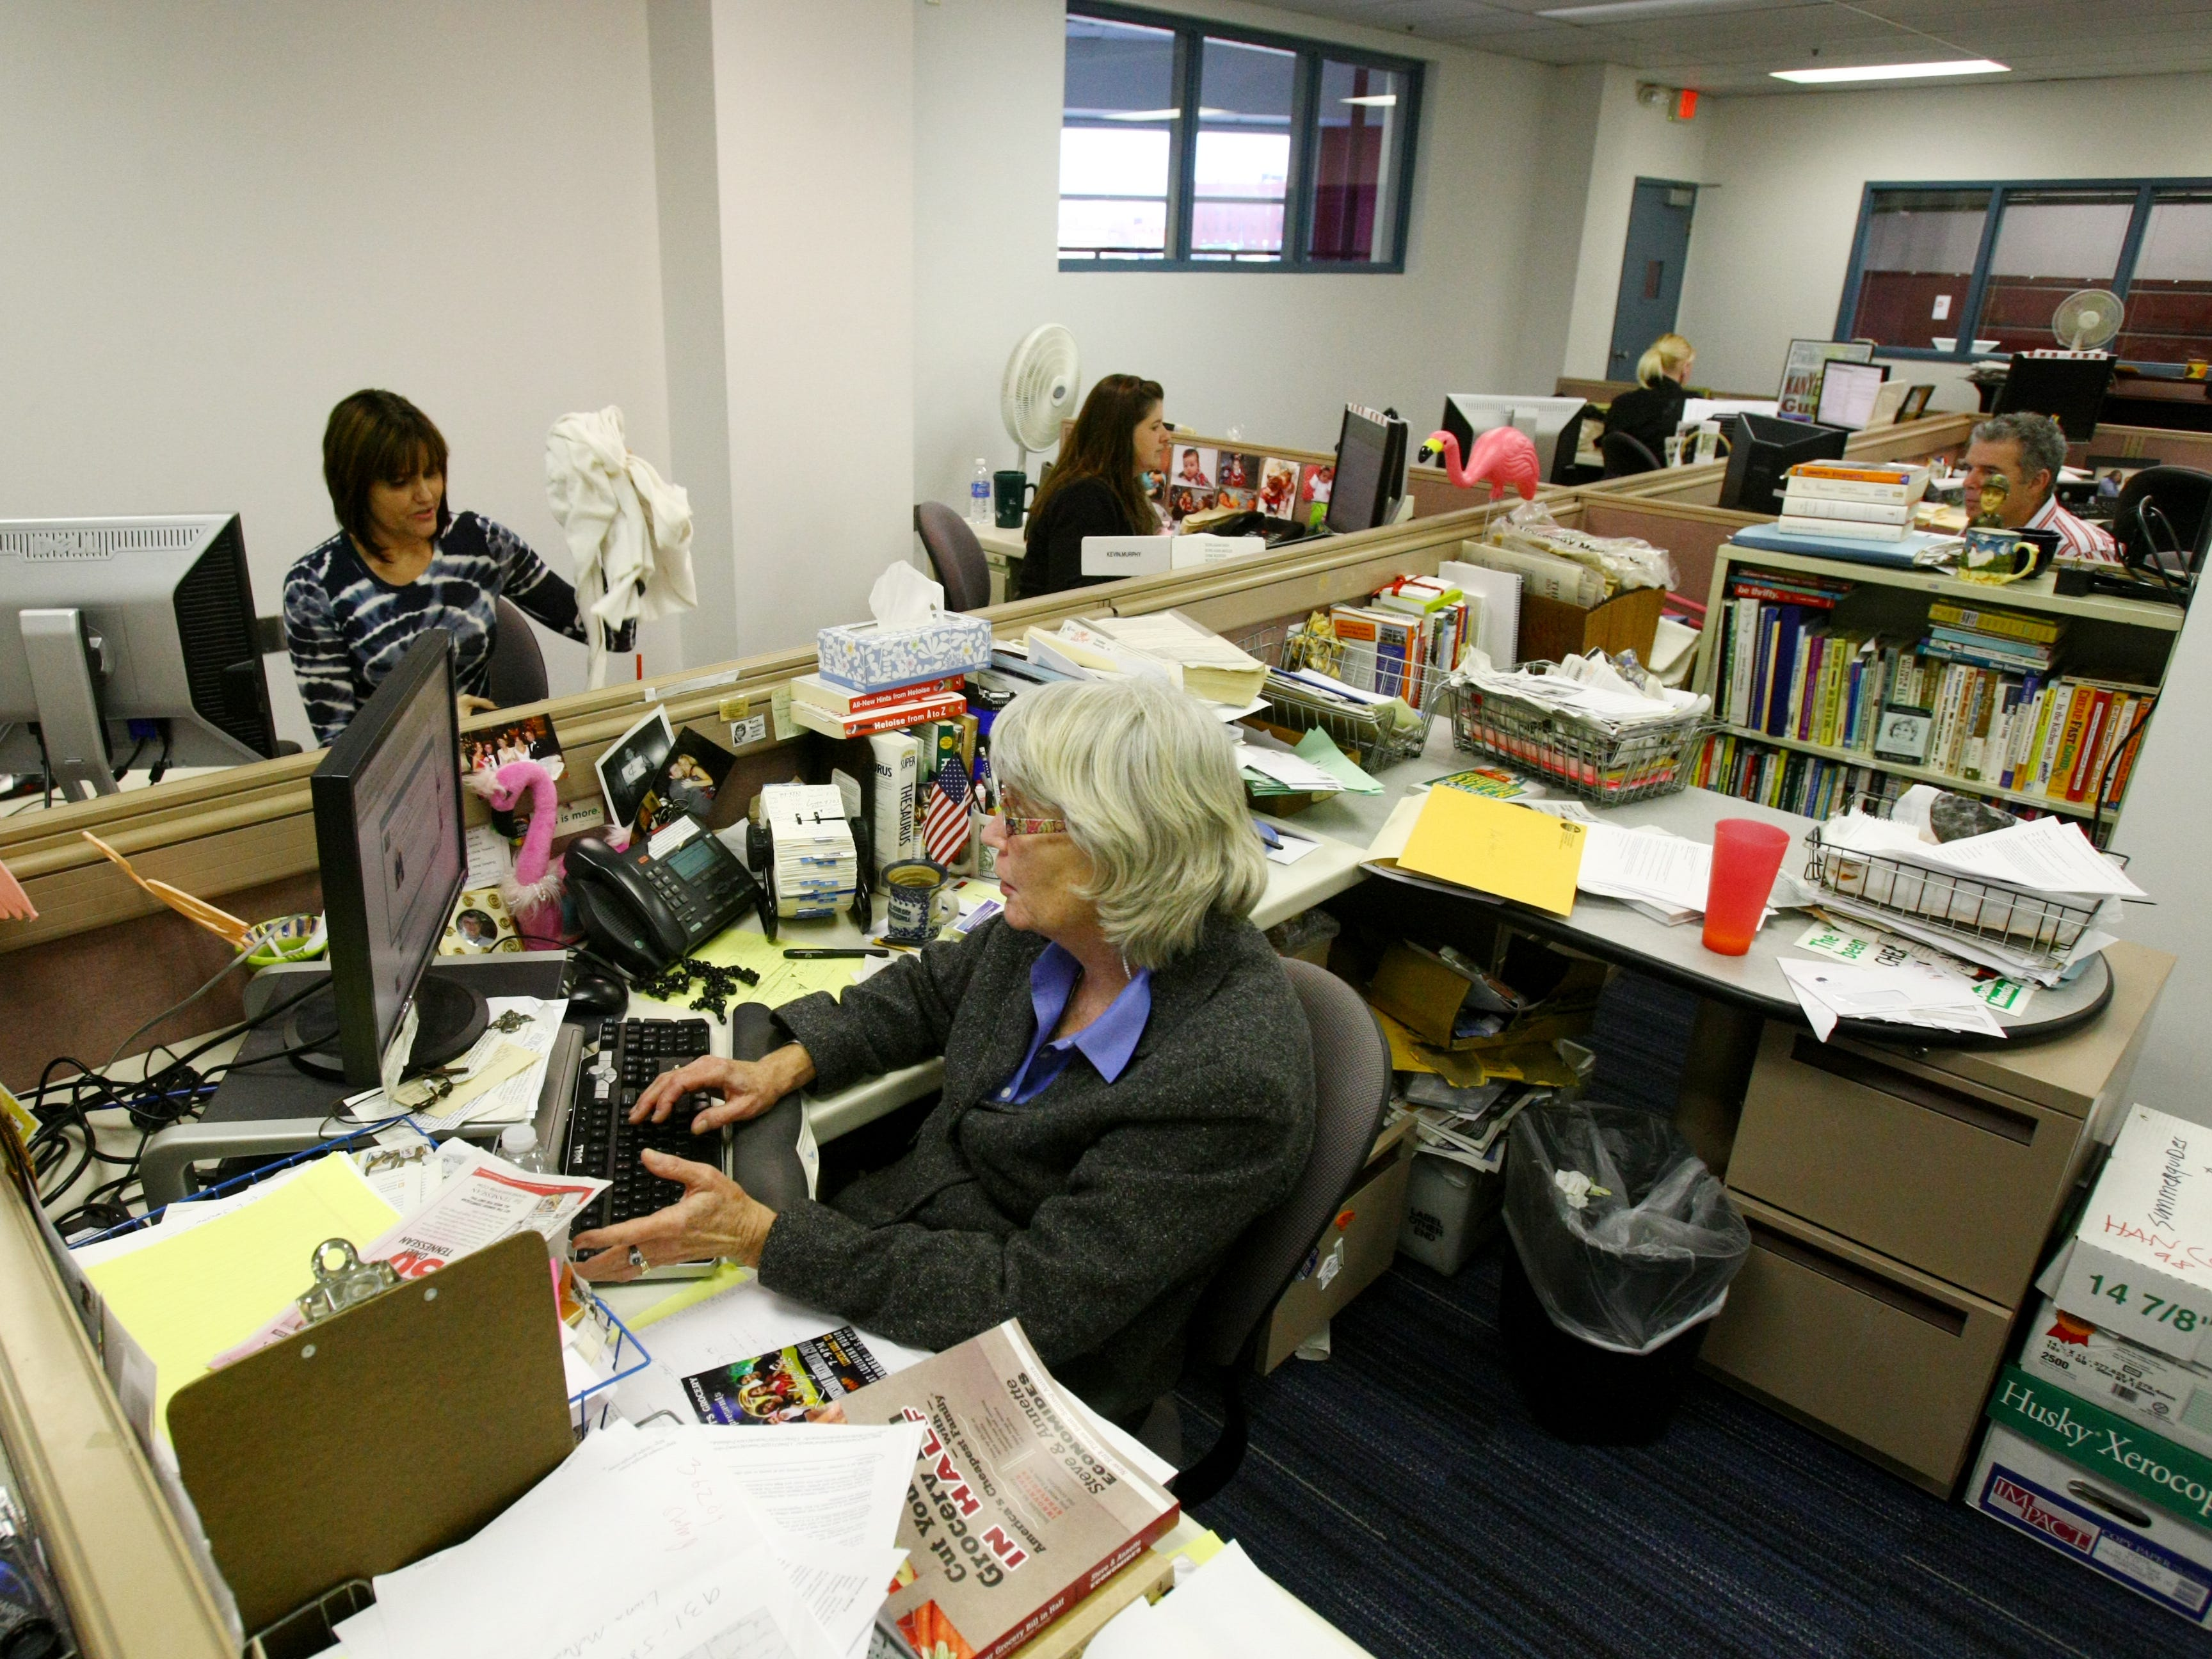 Tennessean staff members work on as the newsroom undergoes a renovation in 2010.